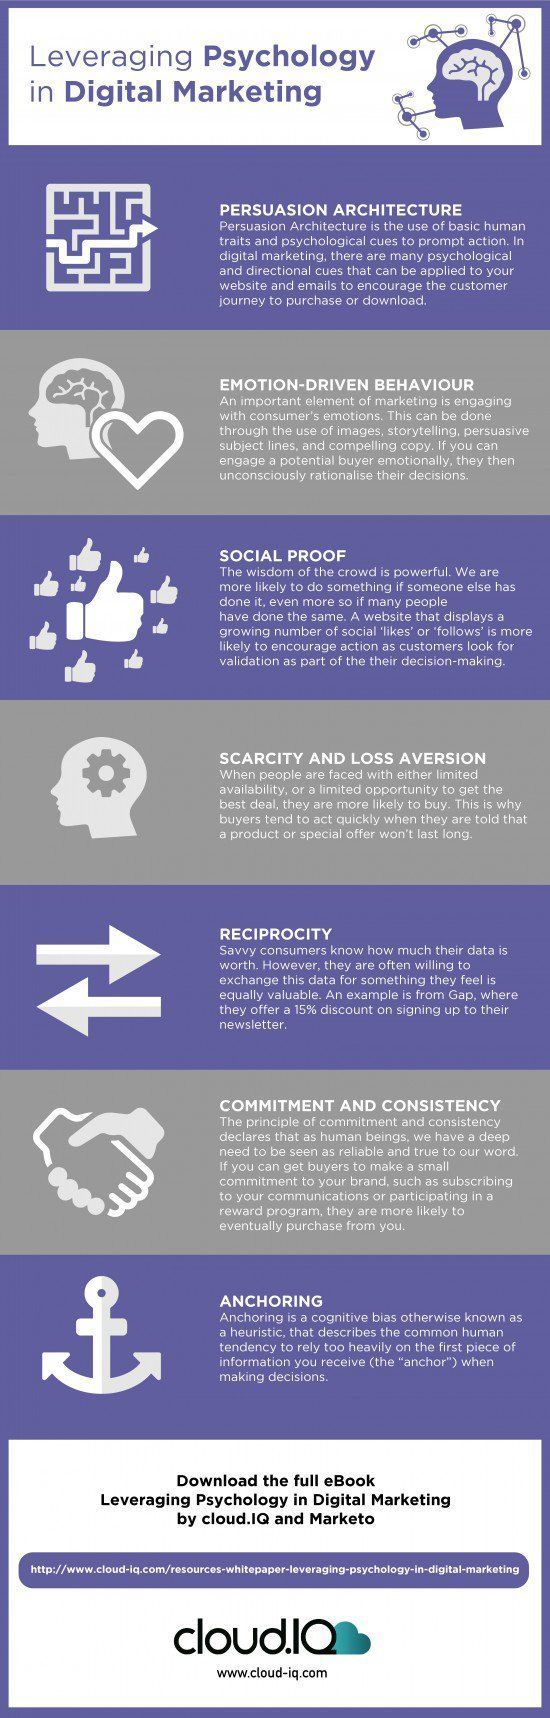 Applying the Psychology of Persuasion to optimise your digital marketing [Infographic] - Smart Insights Digital Marketing Advice. Download the e-book at http://www.cloud-iq.com/resources-whitepaper-leveraging-psychology-in-digital-marketing